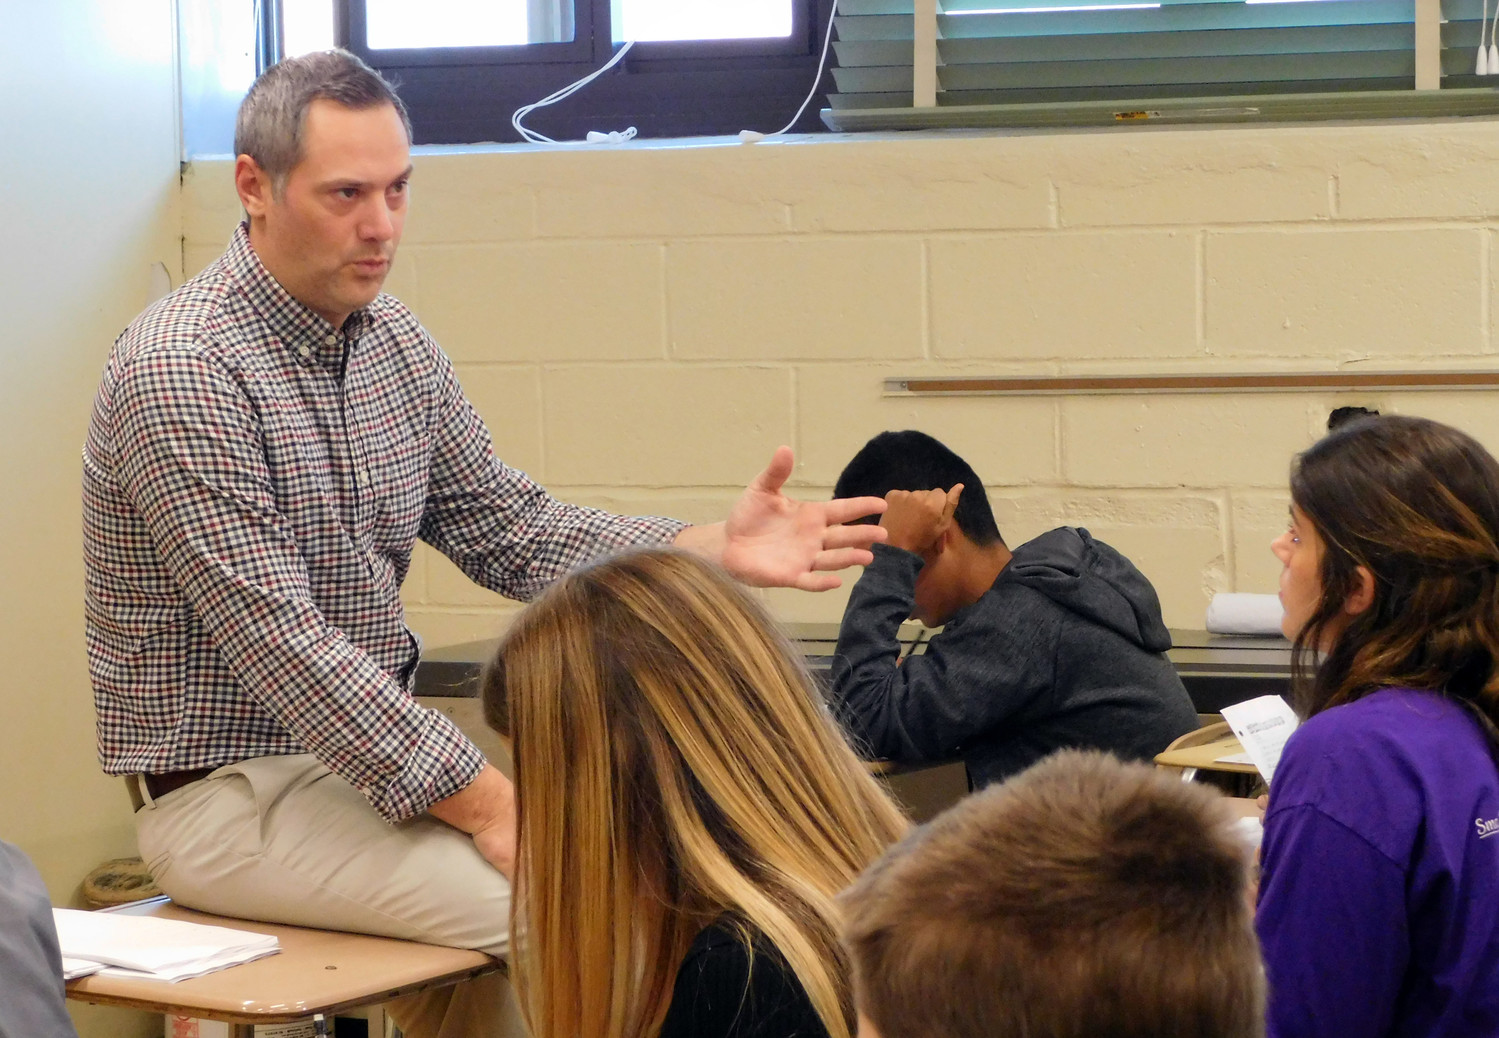 Rich Wojcieski, a Bellmore-Merrick health teacher, administered a test in his health class on Dec. 1 after speaking with the Herald about changes in the ways educators tackle human sexuality with the proliferation of social media.